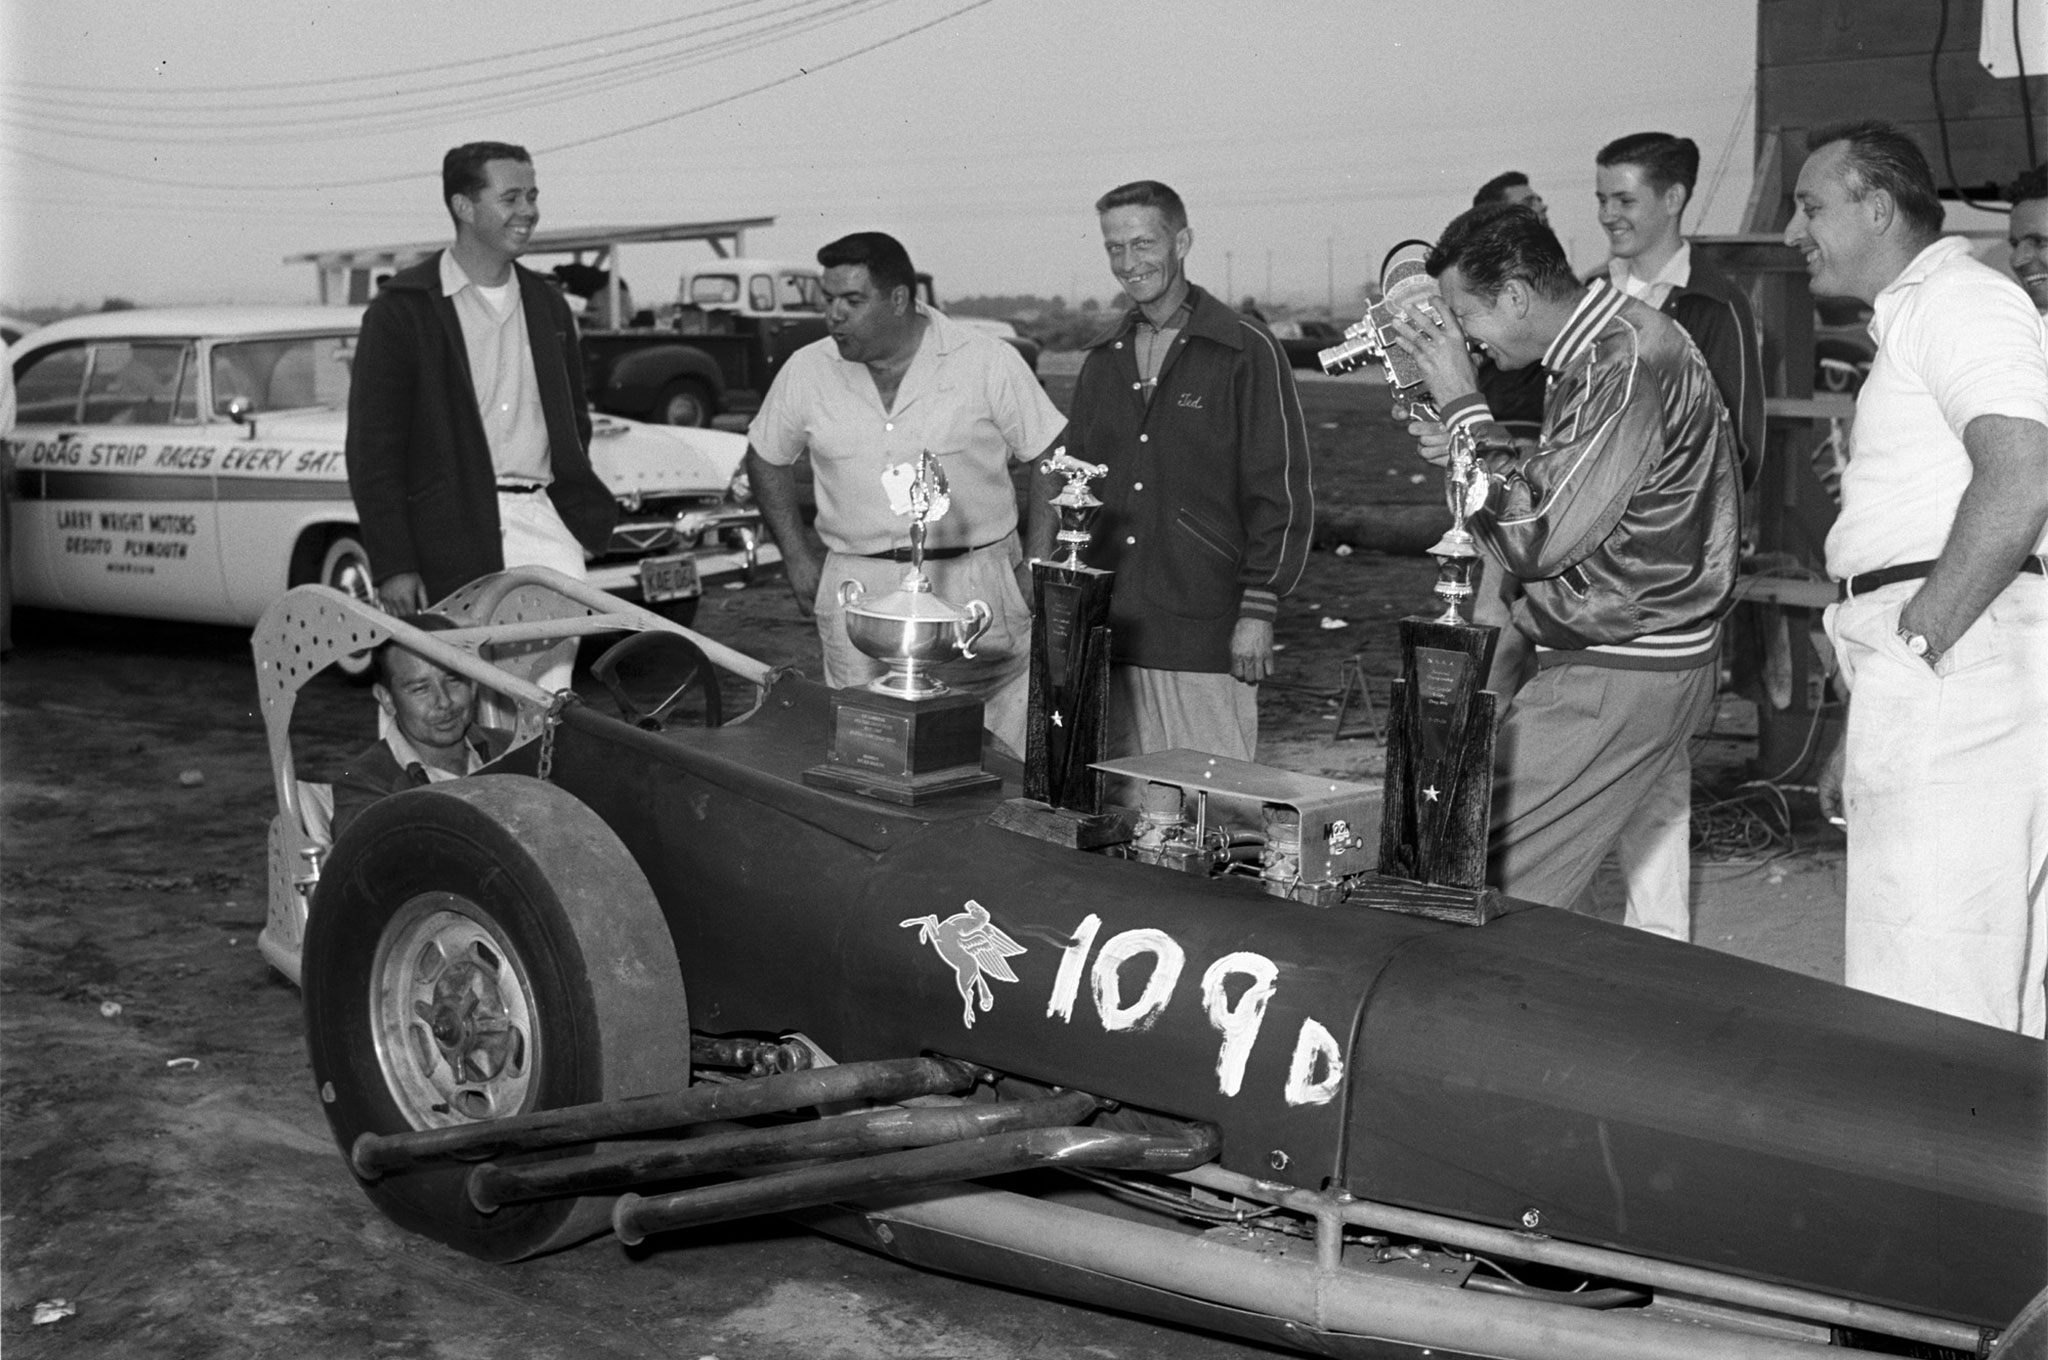 """Nothing here suggests the acrimony to come between Scotty Fenn (far right) and the Yeakel Cadillac Specialists team led by Lou Baney (third from left), nor the media war later waged by Fenn and Wally Parks (with movie camera). Baney, Kenny Arnold (seated), and their crew are celebrating a big Top Eliminator win at San Gabriel's West Coast Regional Championship Drags (Aug. '56 HRM) with a rail that Scotty built for himself before leaving Oklahoma. Considered the prototype for Chassis Research Co.'s popular TE-440 model—short for """"Top Eliminator, 440 Yards""""—this Cad-powered slingshot evolved into the Cook & Bedwell car."""